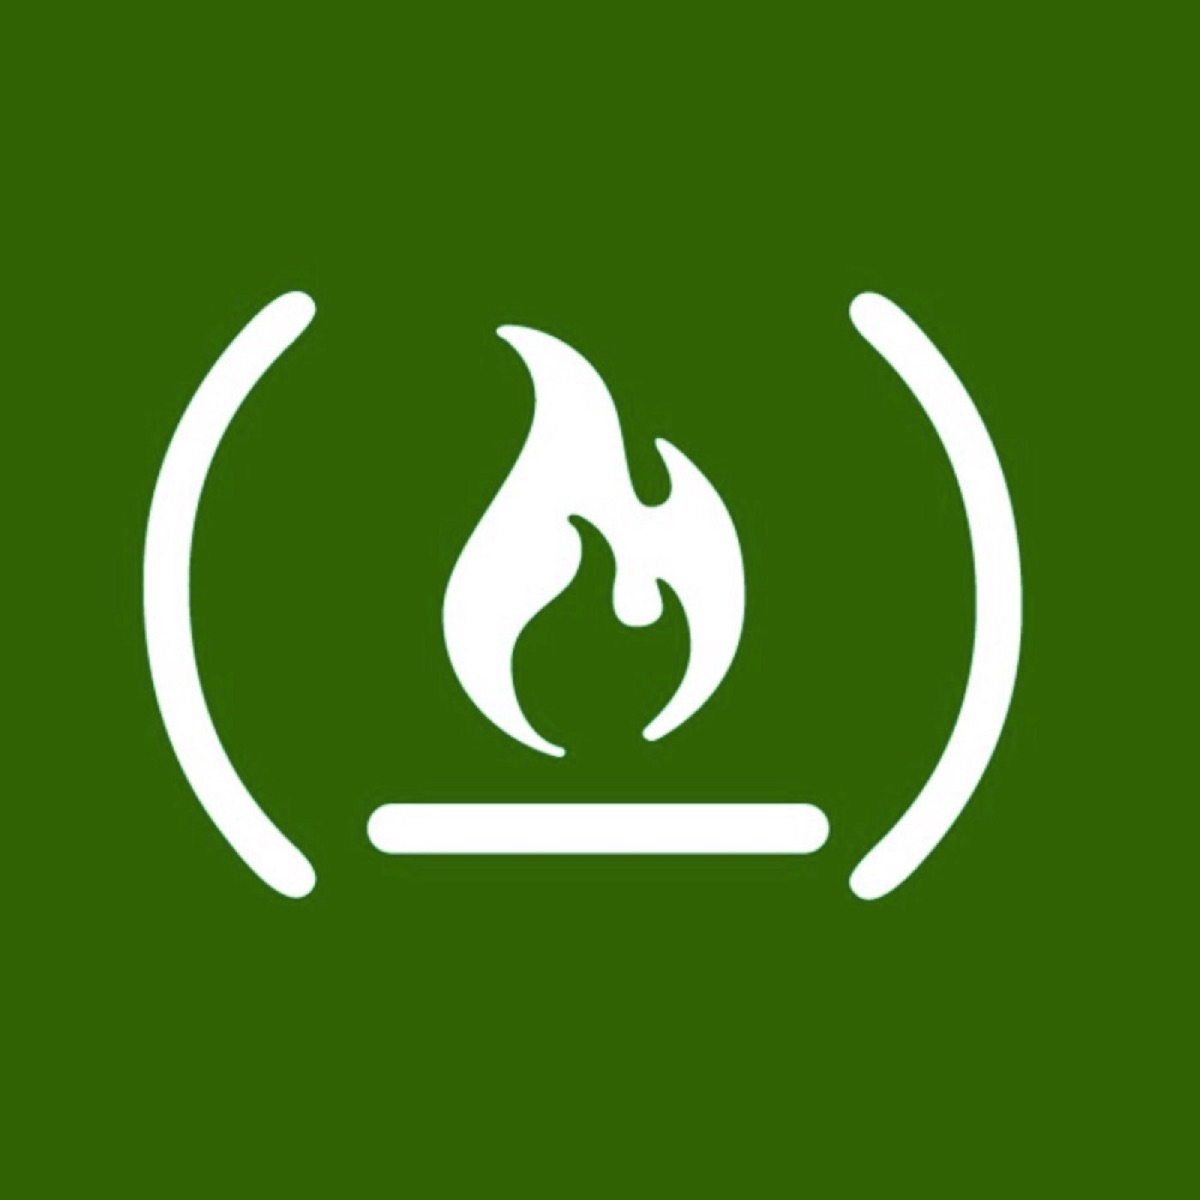 The freeCodeCamp Podcast